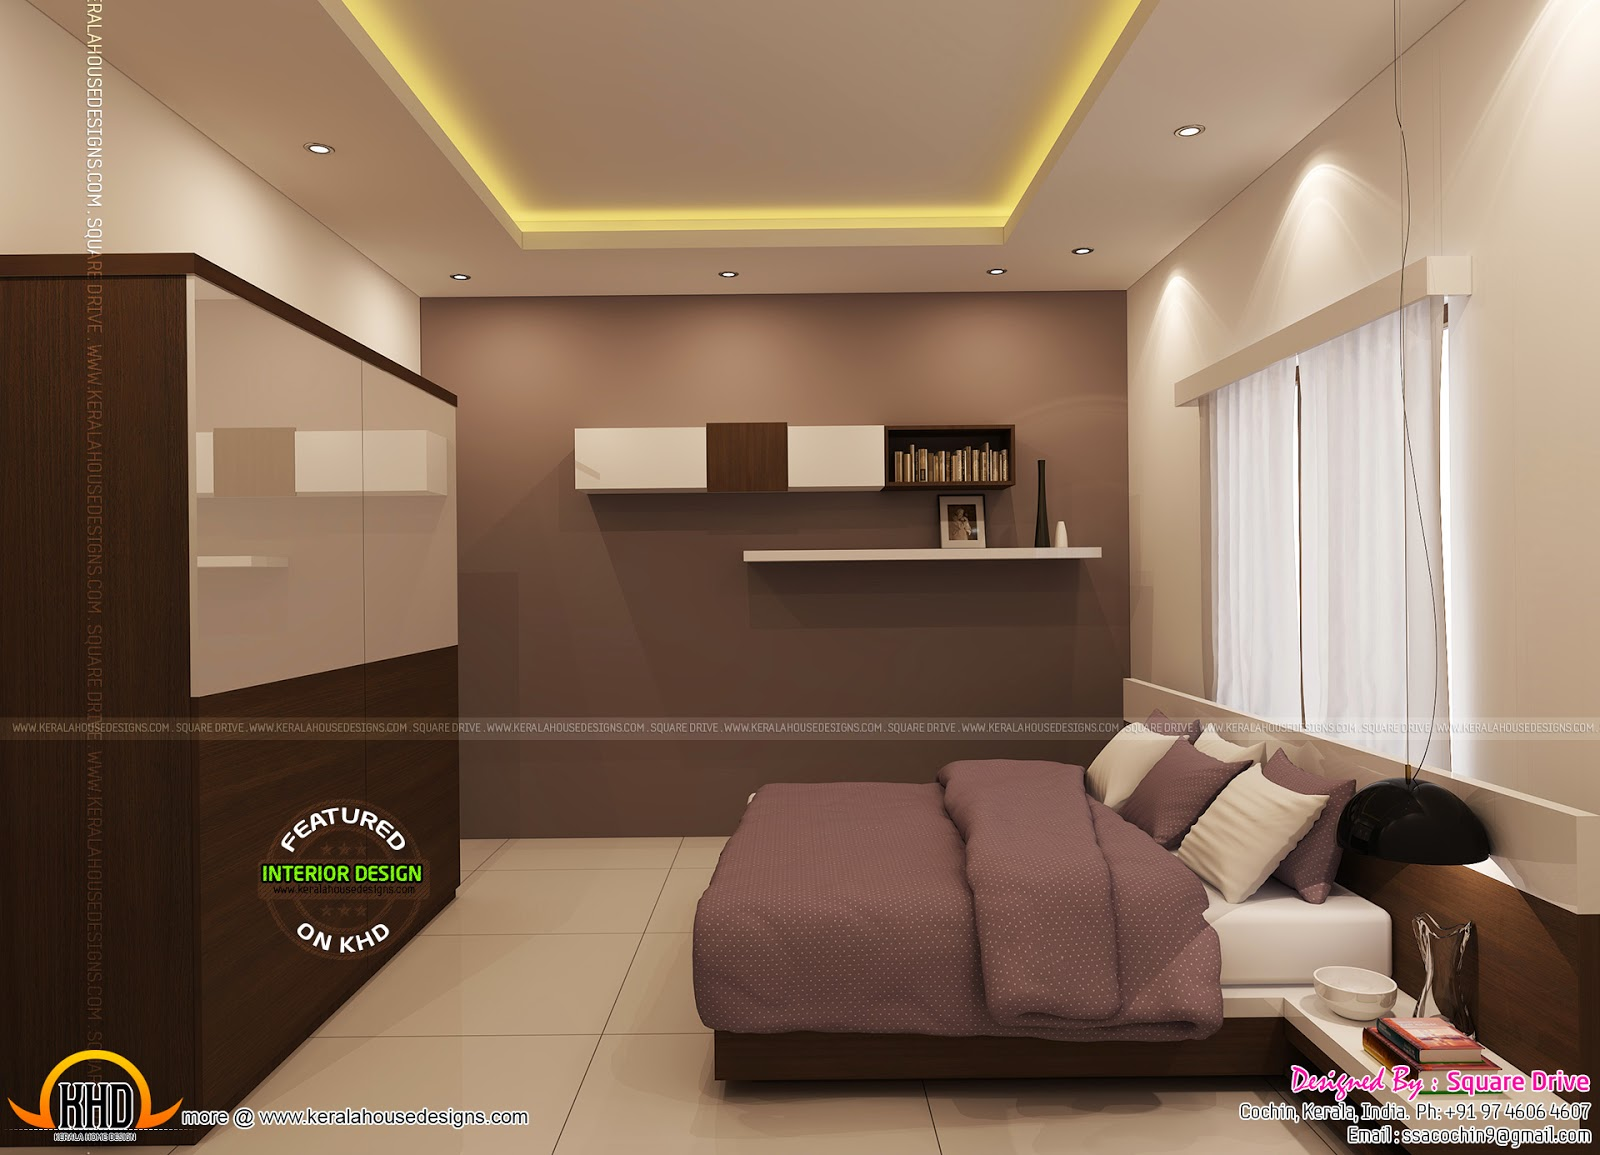 interior design in kerala homes bedroom interior designs kerala home design and floor plans 24453